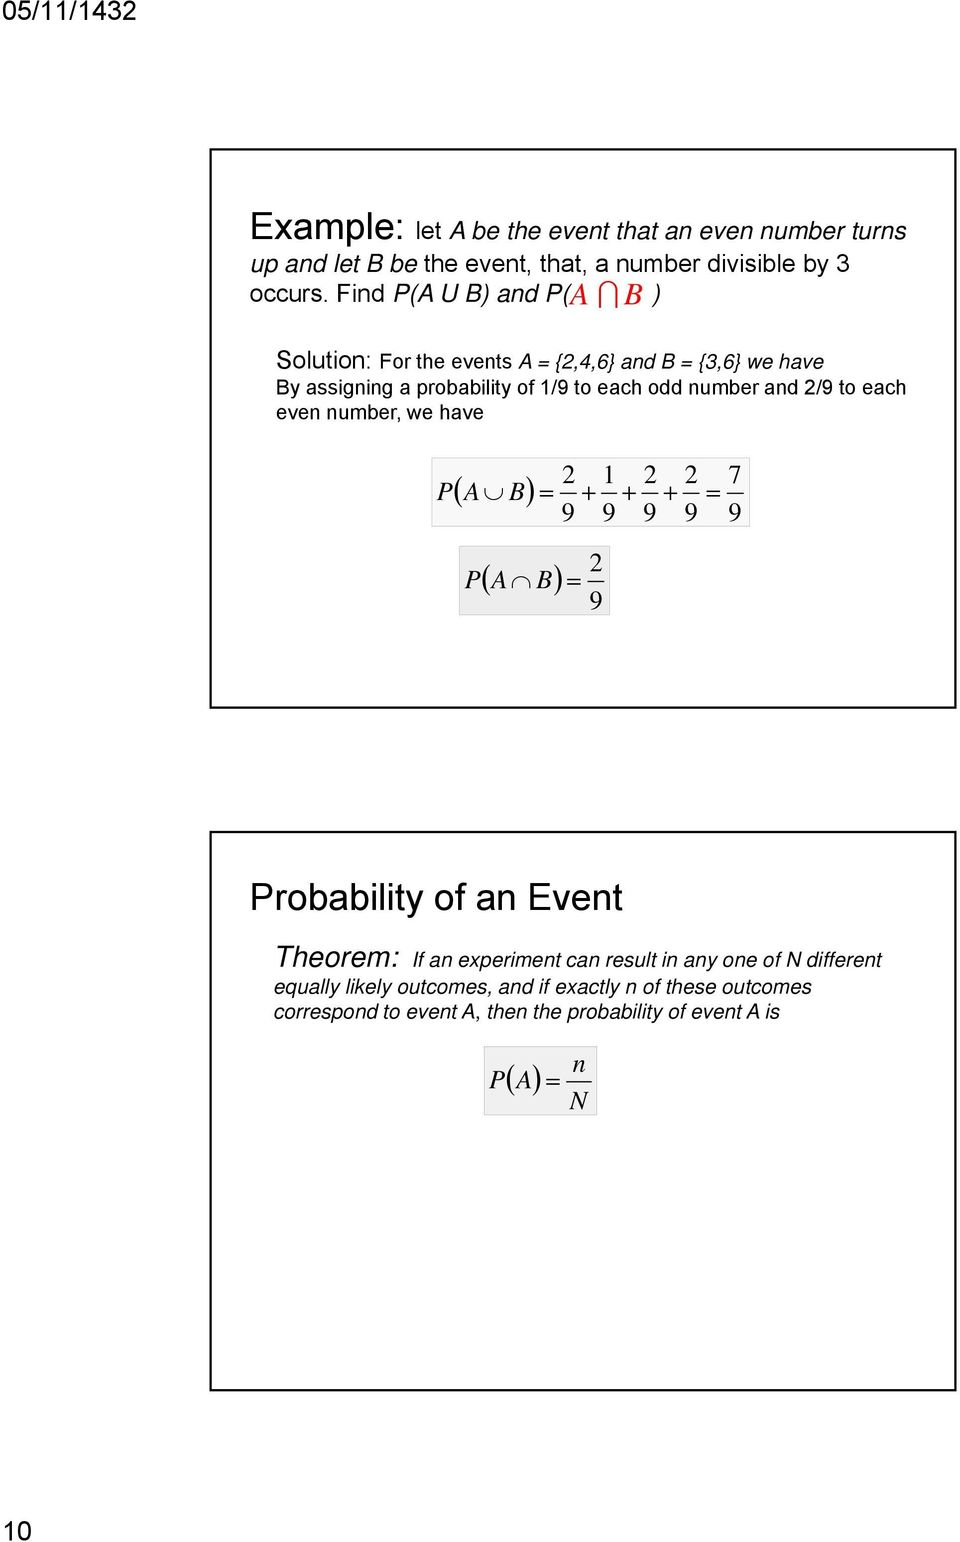 2/9 to each even number, we have ( A ) ( A ) 2 9 + 2 9 1 9 + 2 9 + 2 9 7 9 robability of an Event Theorem: If an experiment can result